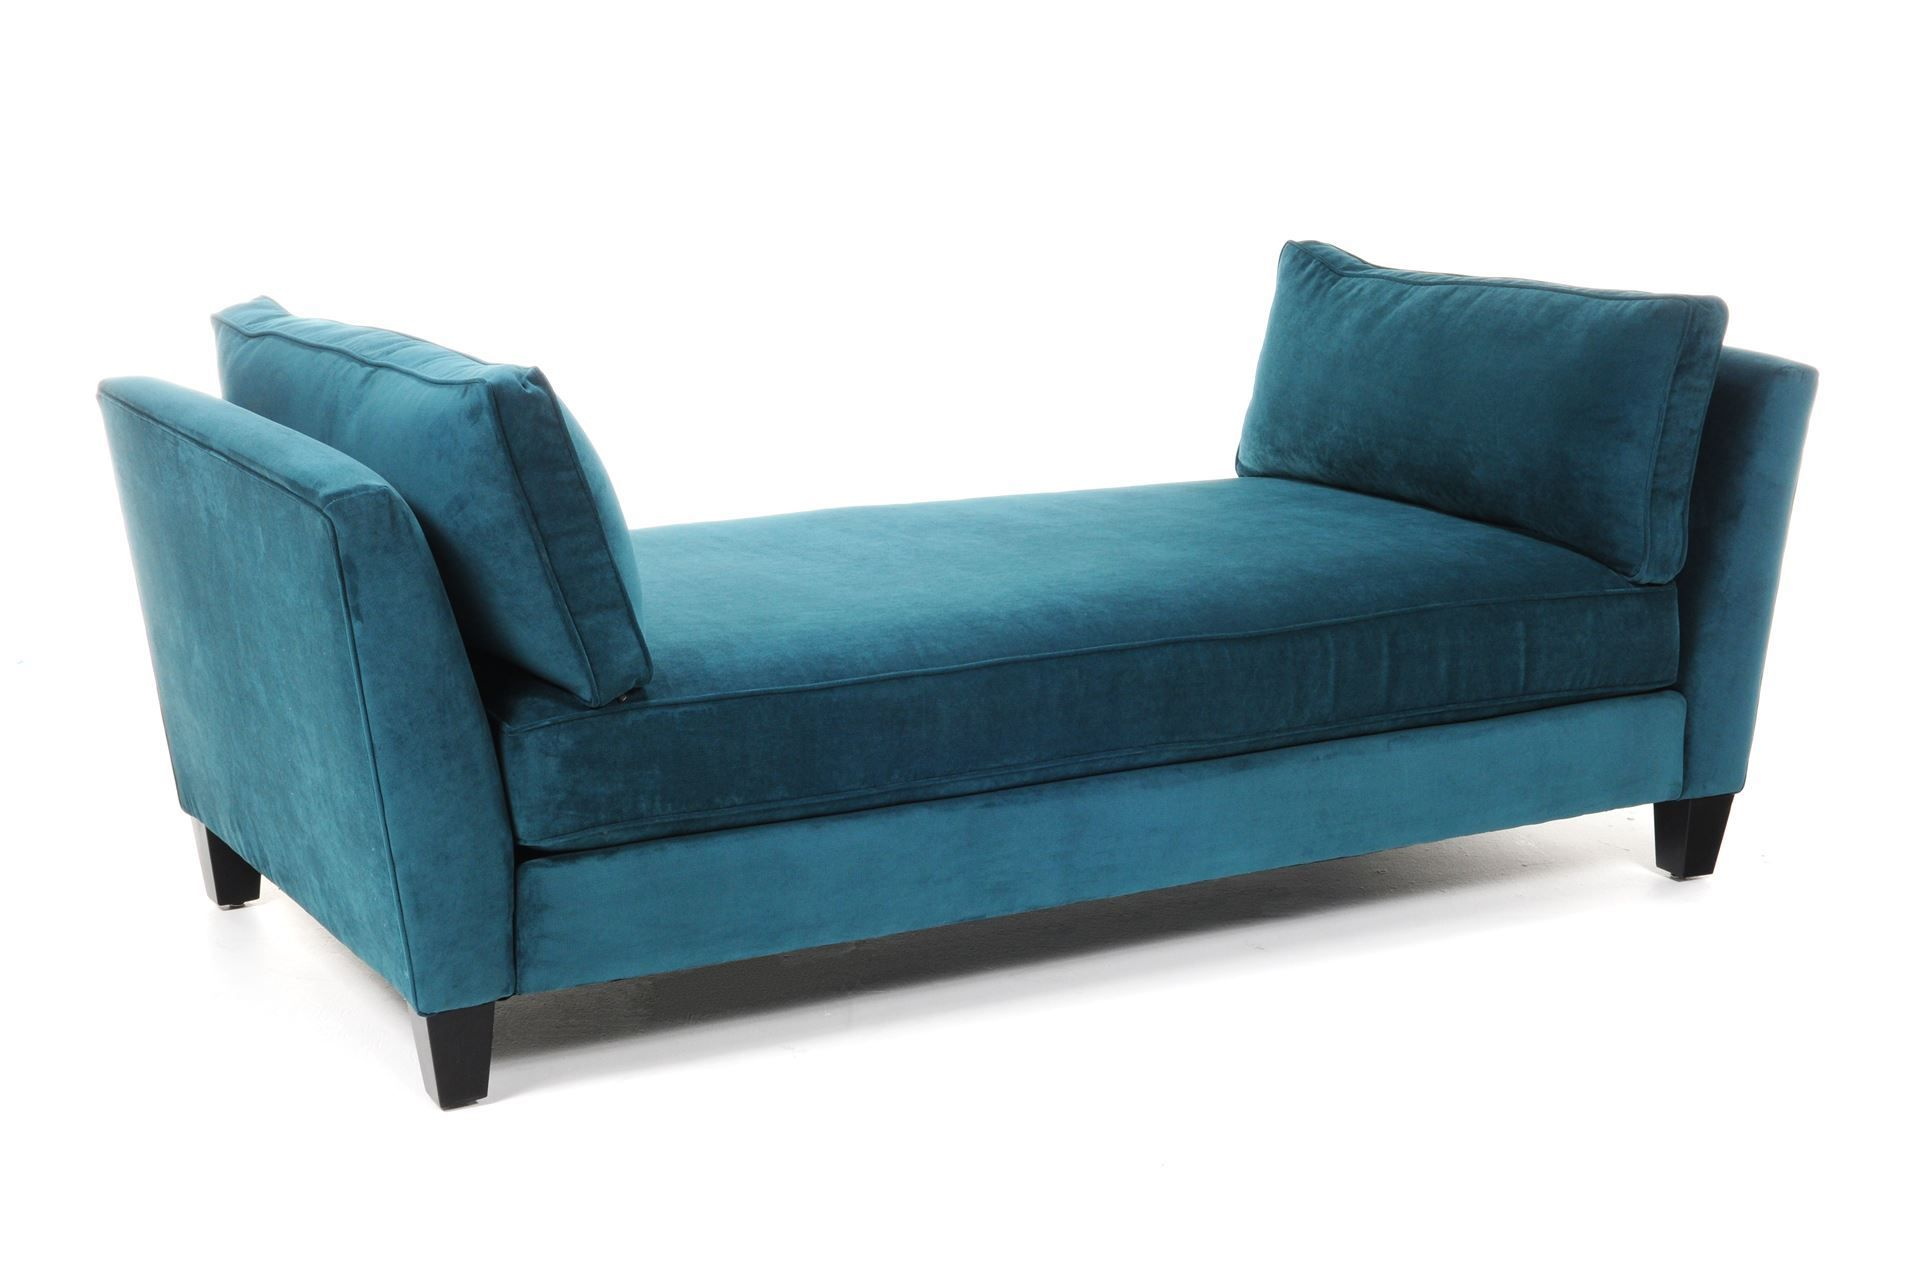 Fainting falling our lounging this beautiful chaise lounge will